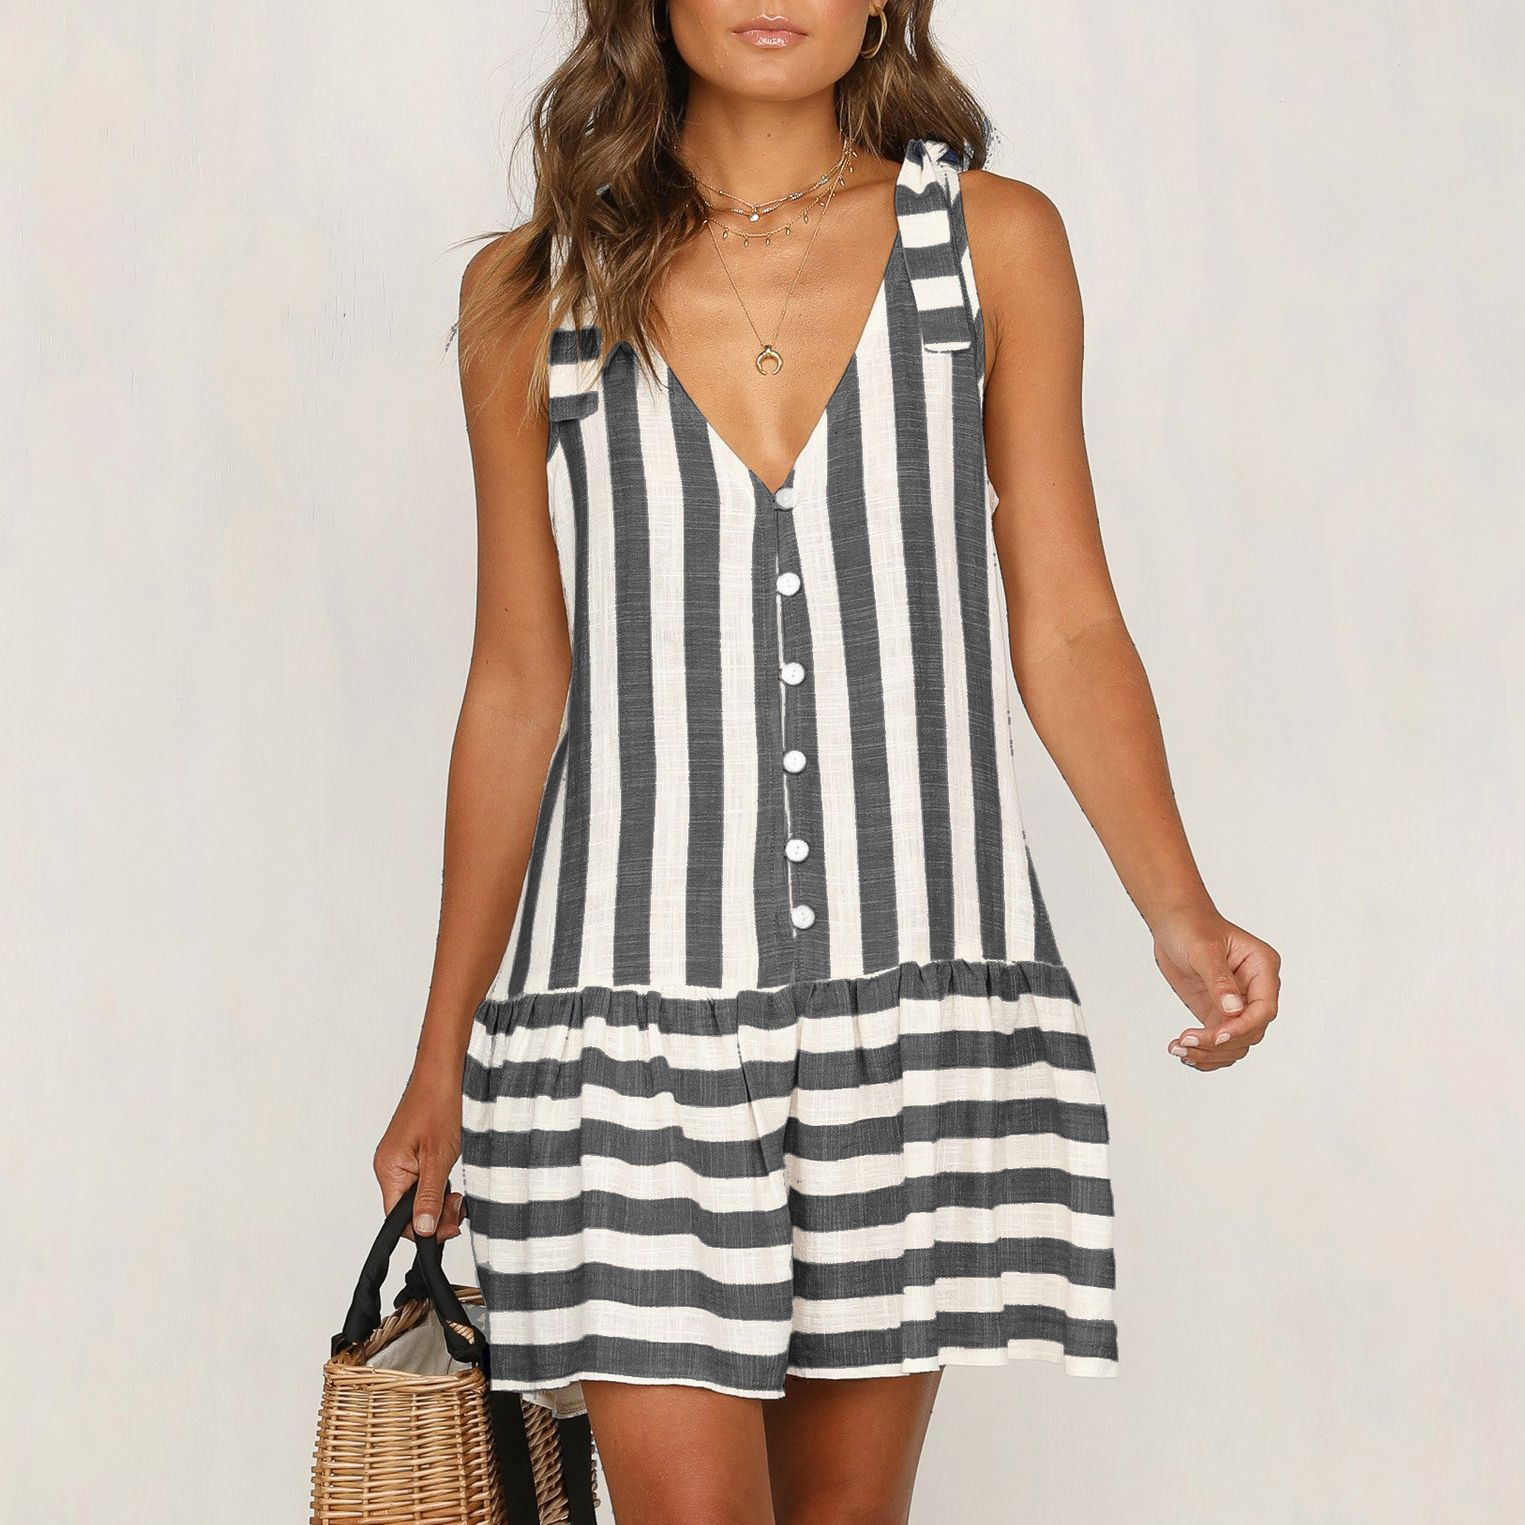 Sassy Tie-up Striped Mini Sleeveless Dress